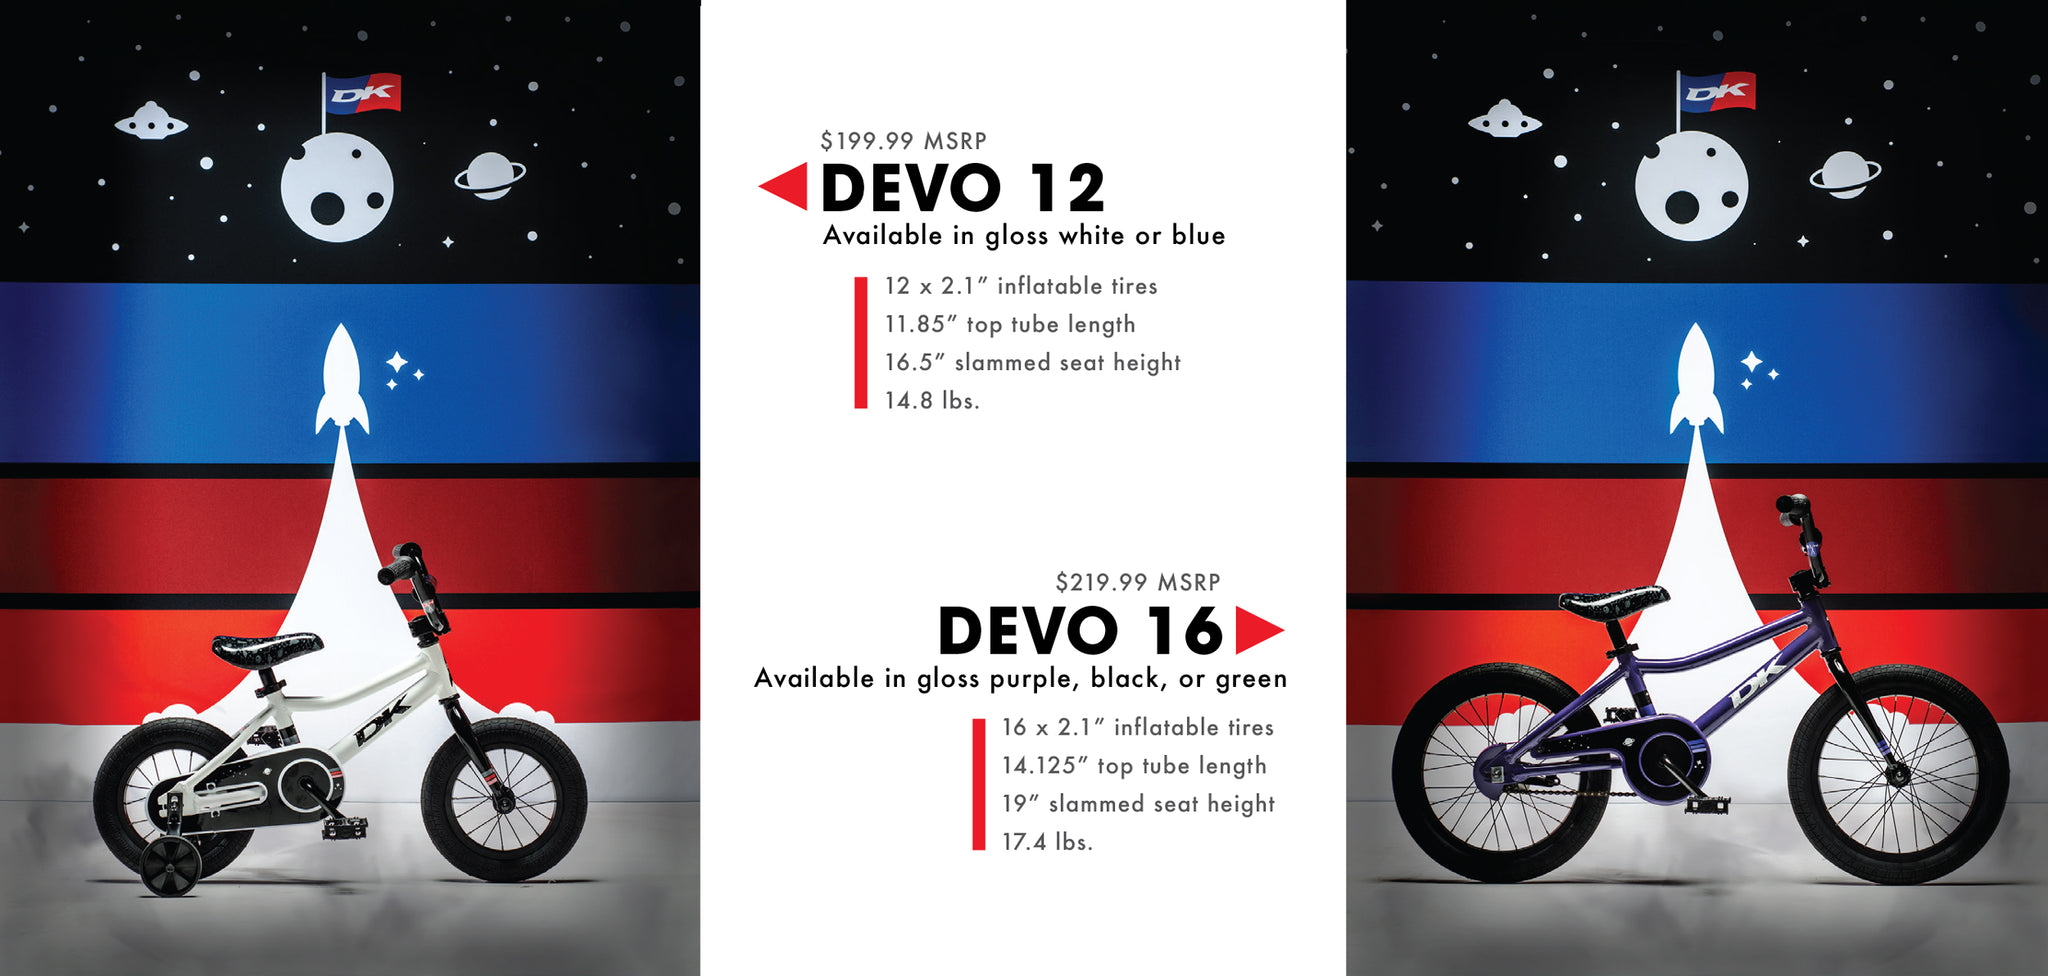 DK Bicycles Devo Kids Collection